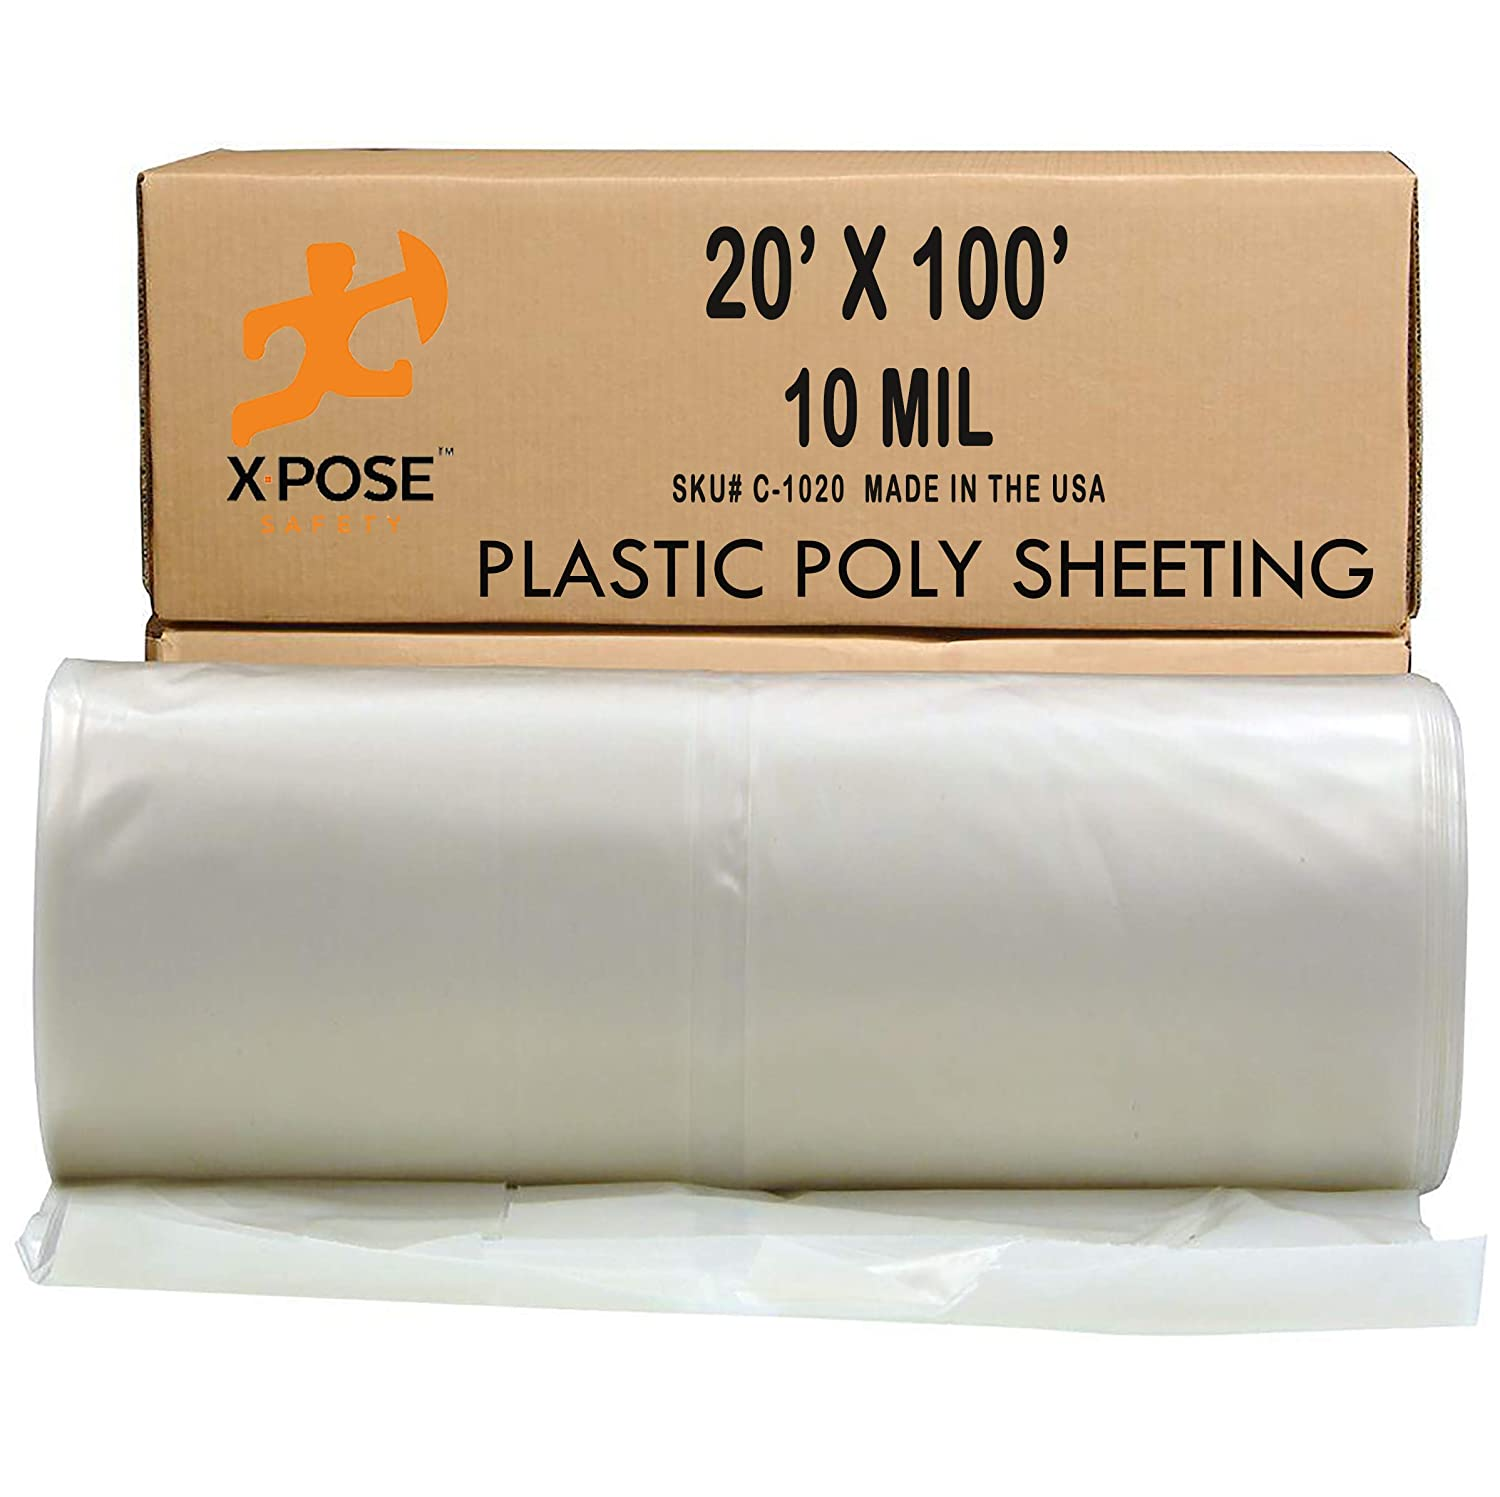 Poly Sheeting - 20x100 Feet – Heavy Duty, 10 Mil Thick Plastic Tarp – Waterproof Vapor and Dust Protective Equipment Cover - Agricultural, Construction and Industrial Use - by Xpose Safety